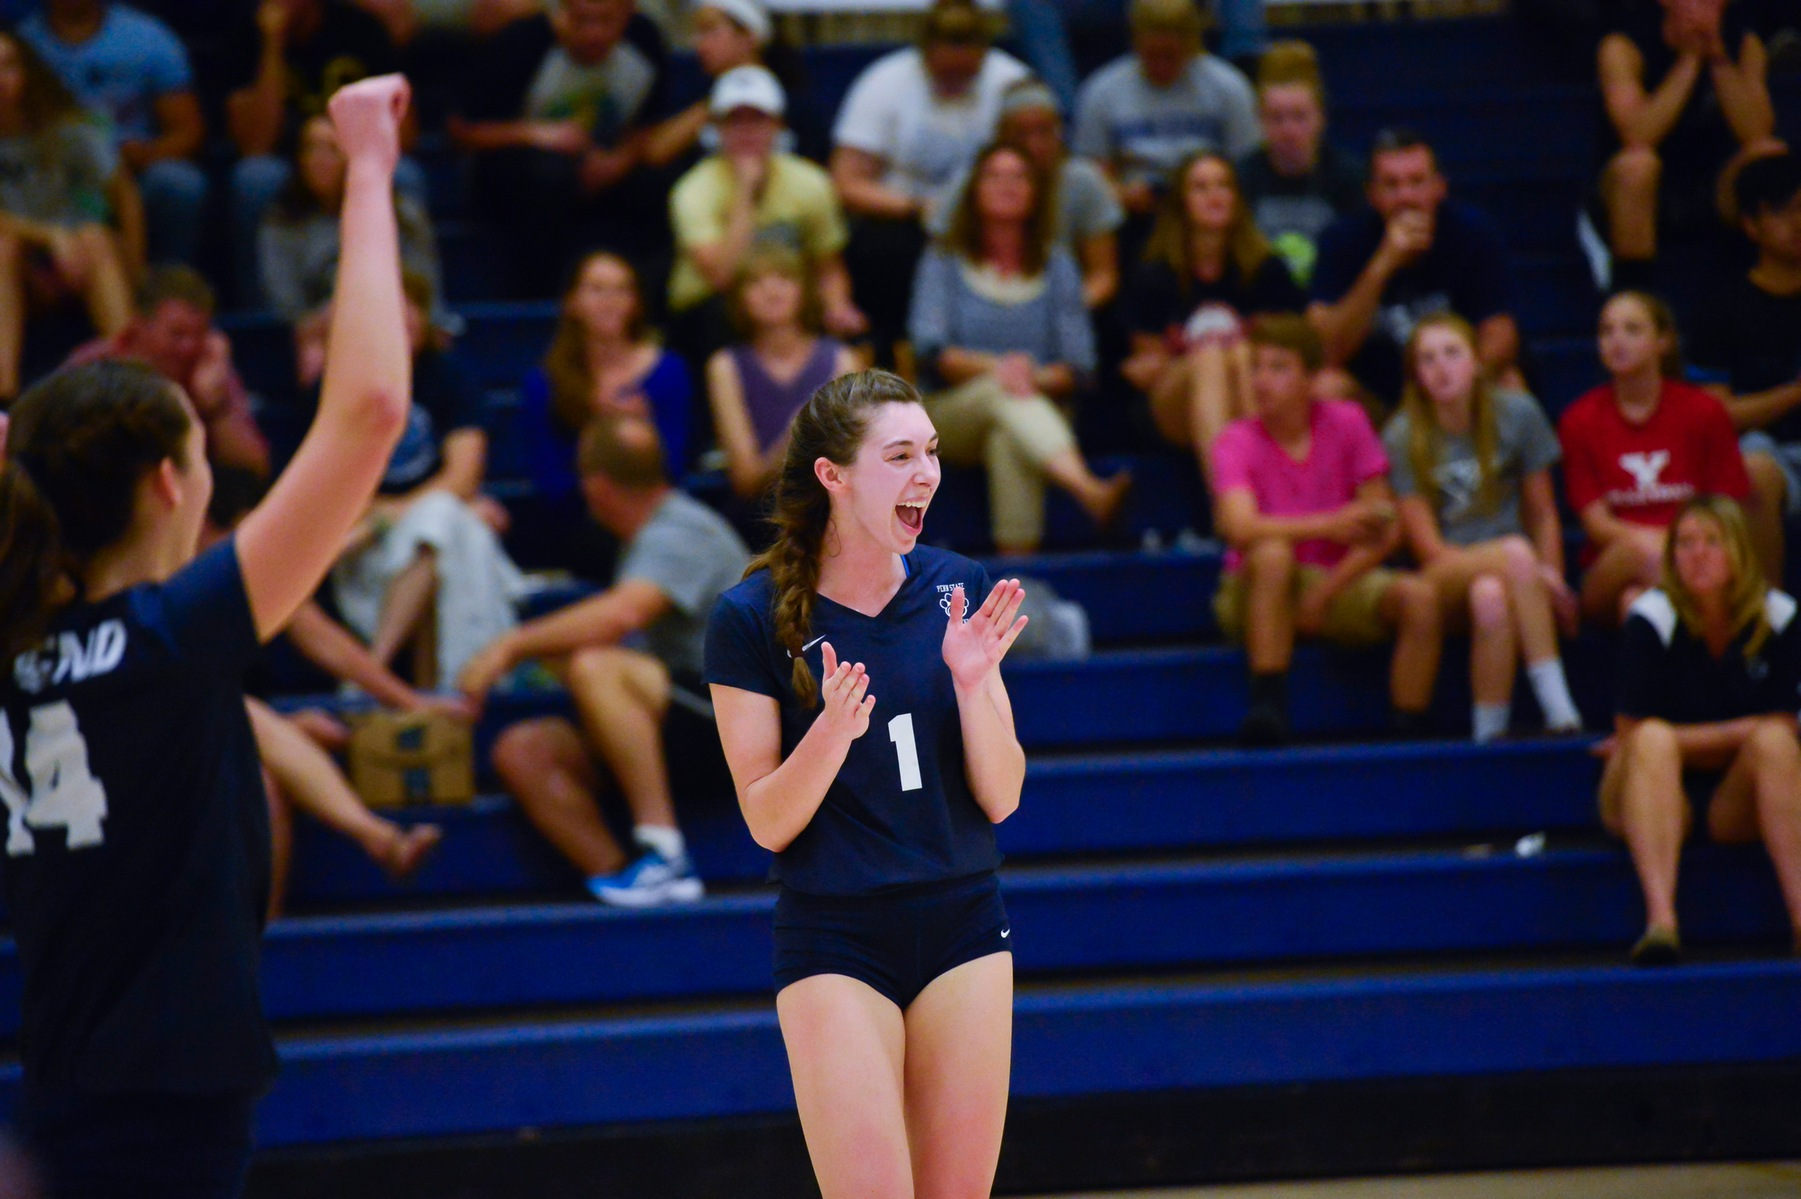 Women's Volleyball Advances to AMCC Championship Game